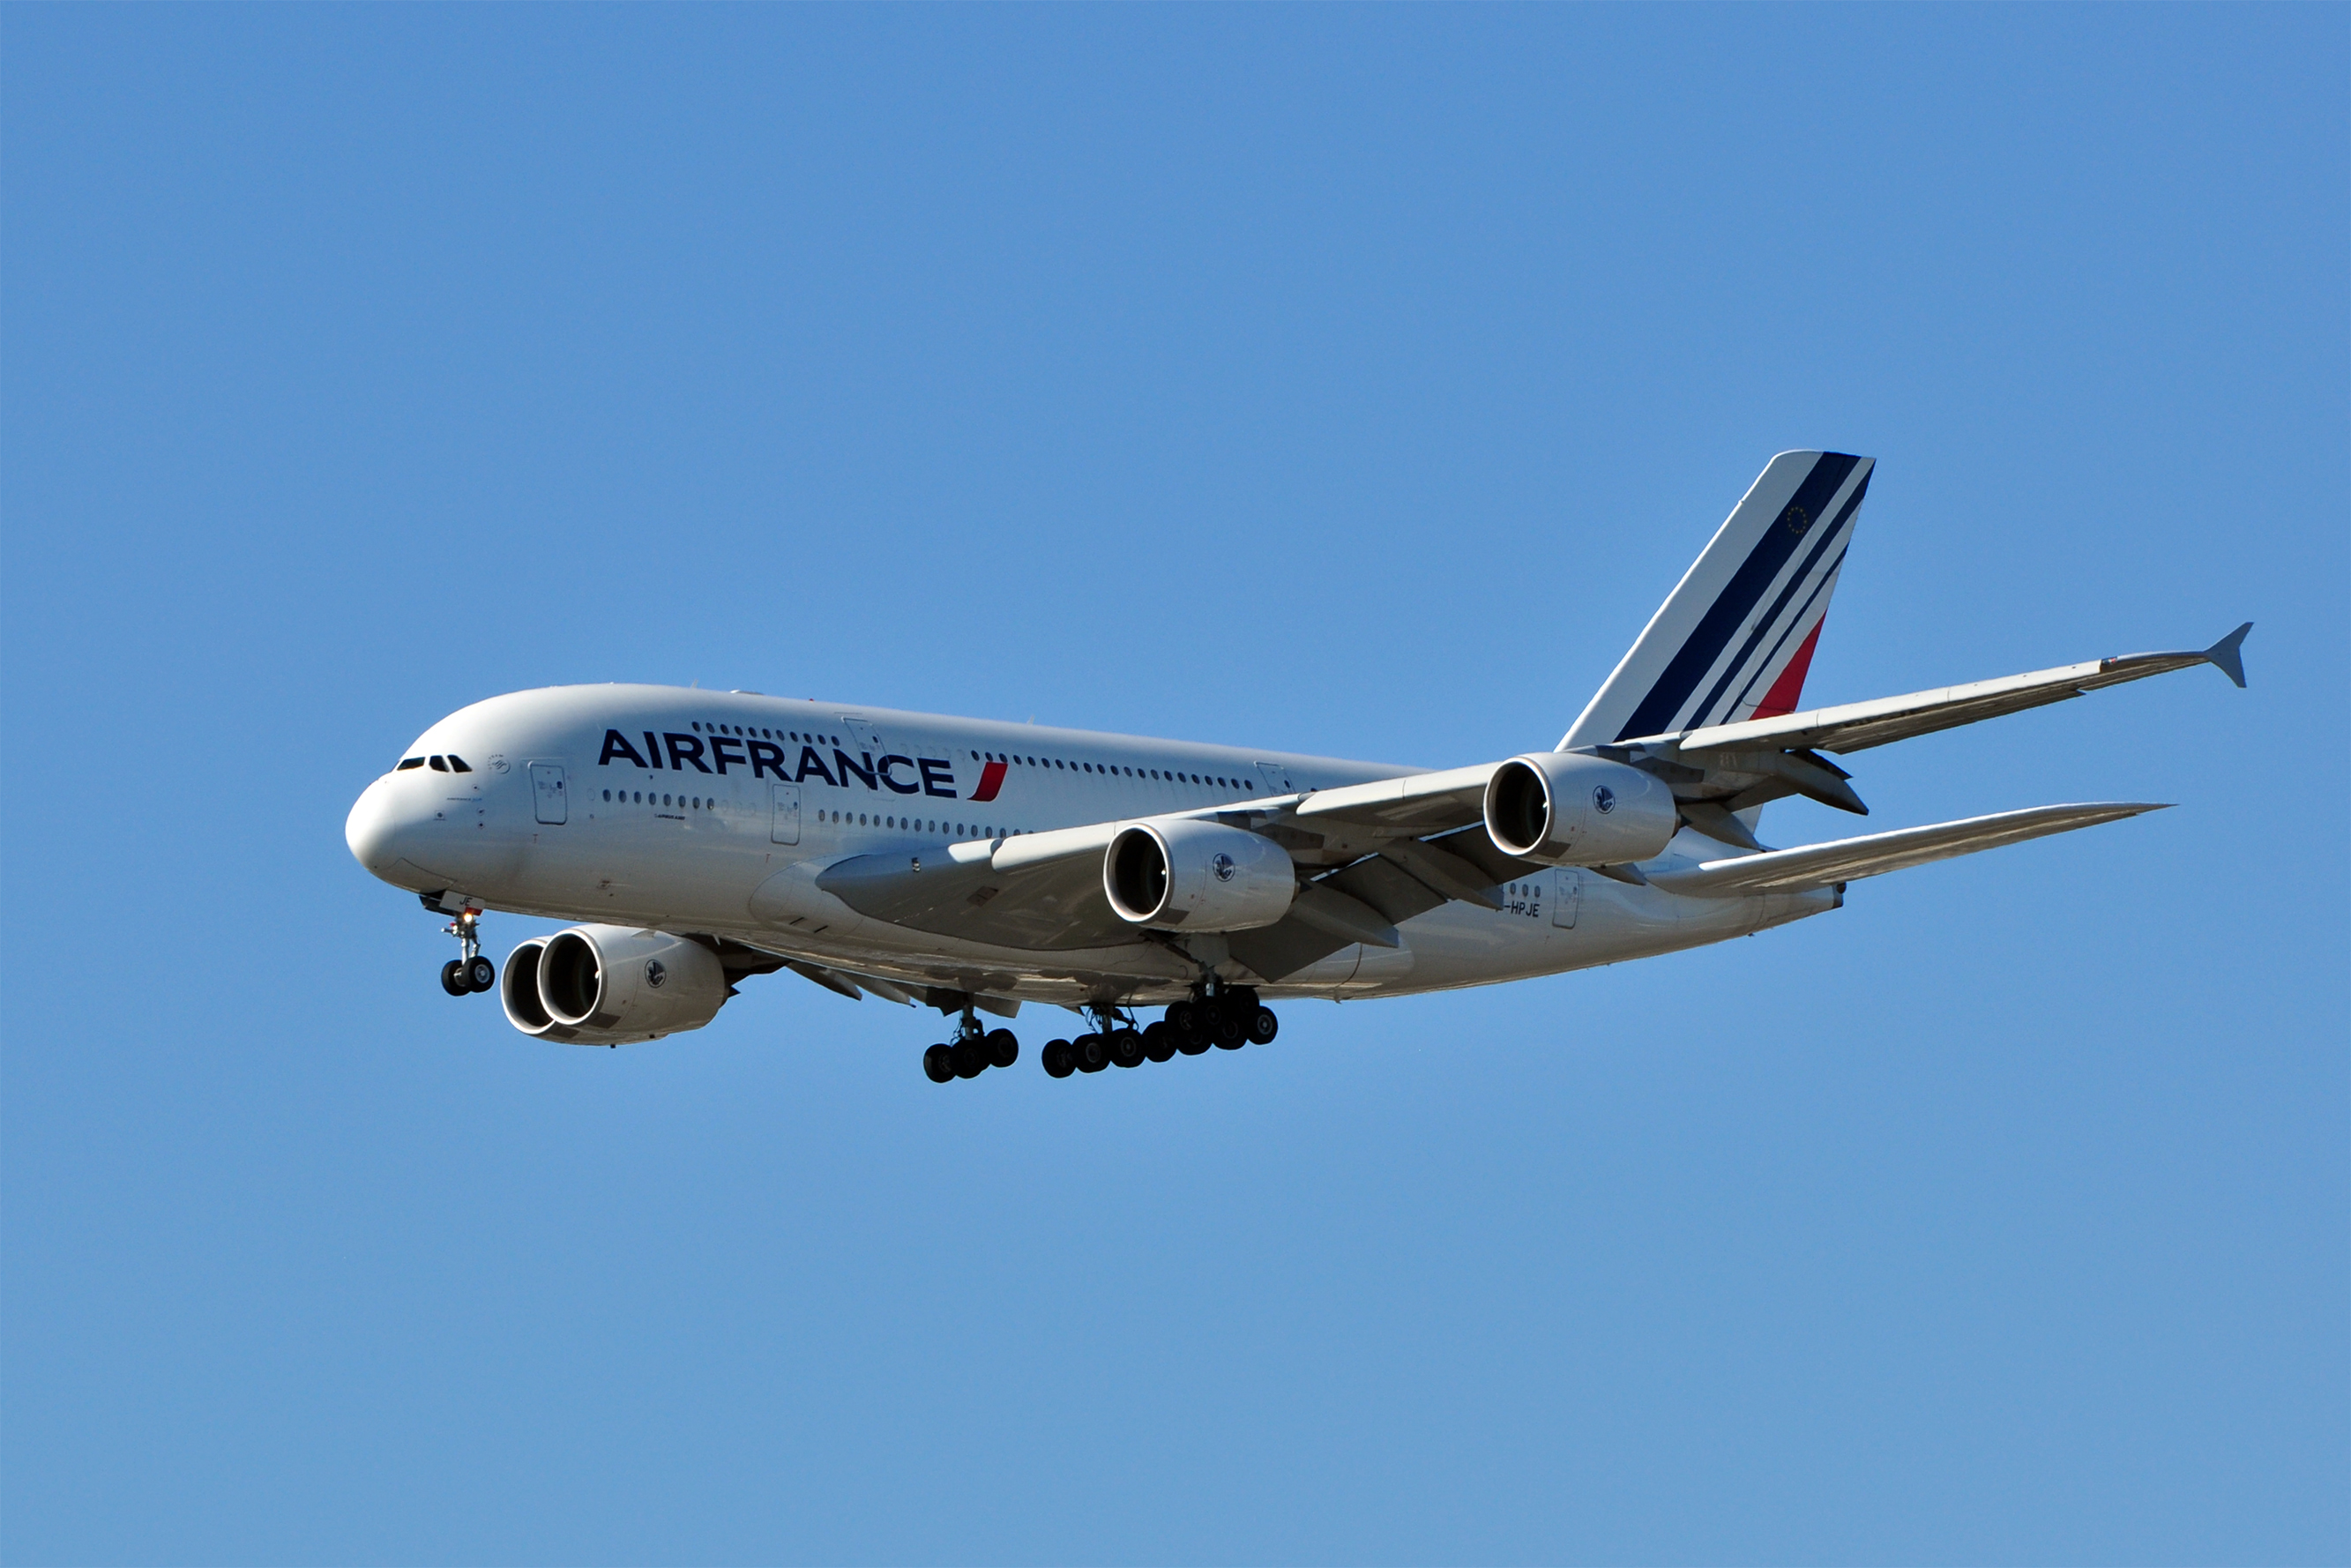 Download this Description Air France Hpje picture